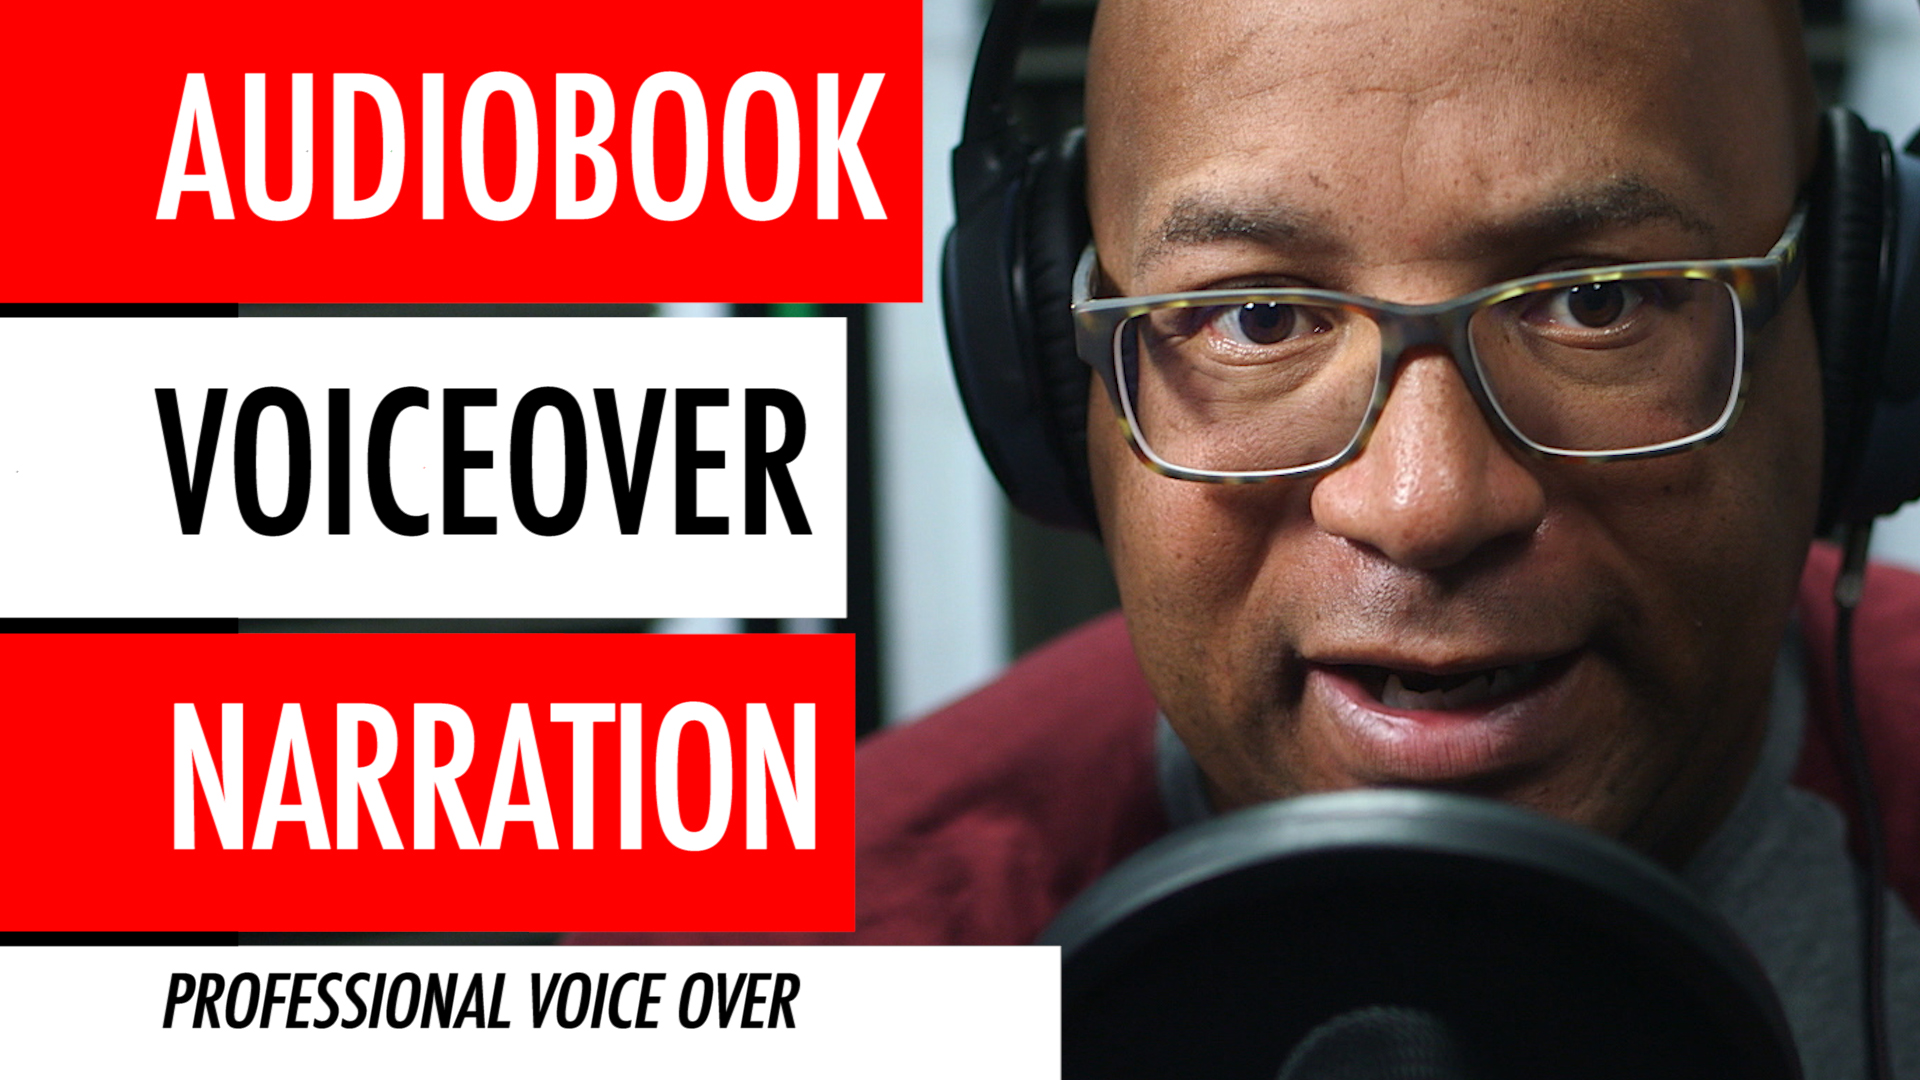 Audiobook Voice Over Narration